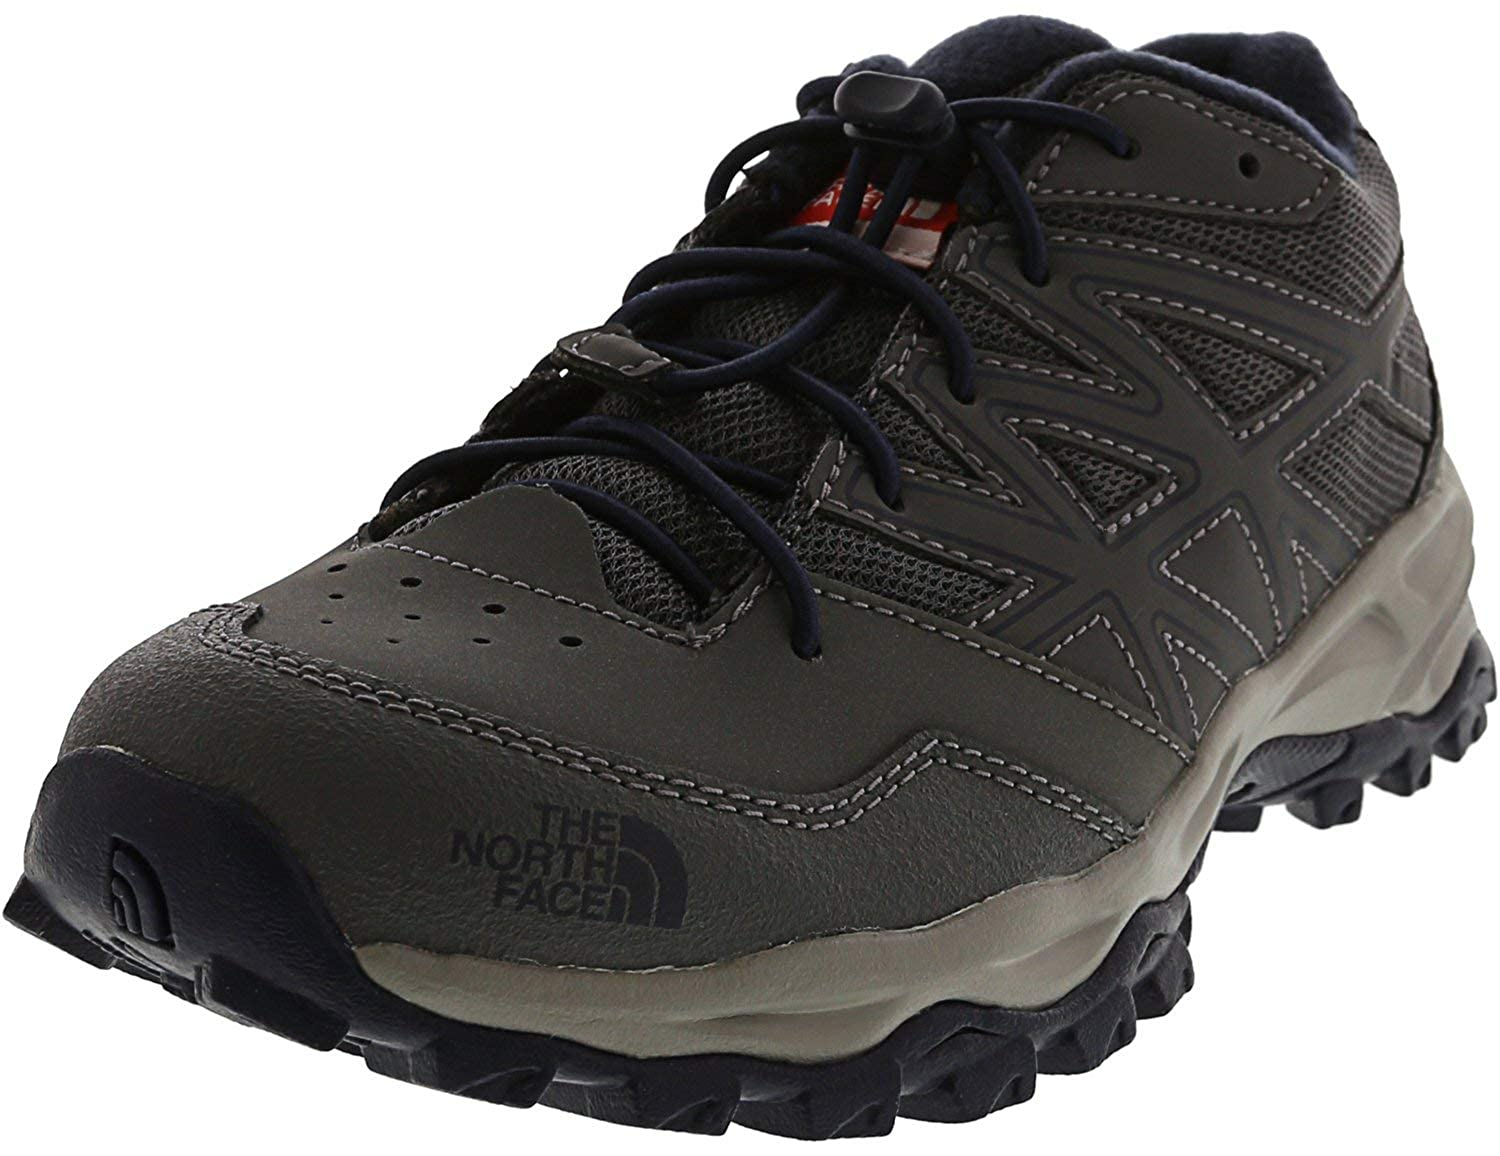 The North Face Jr Hedgehog Hiker Ankle-High Leather Hiking Shoe